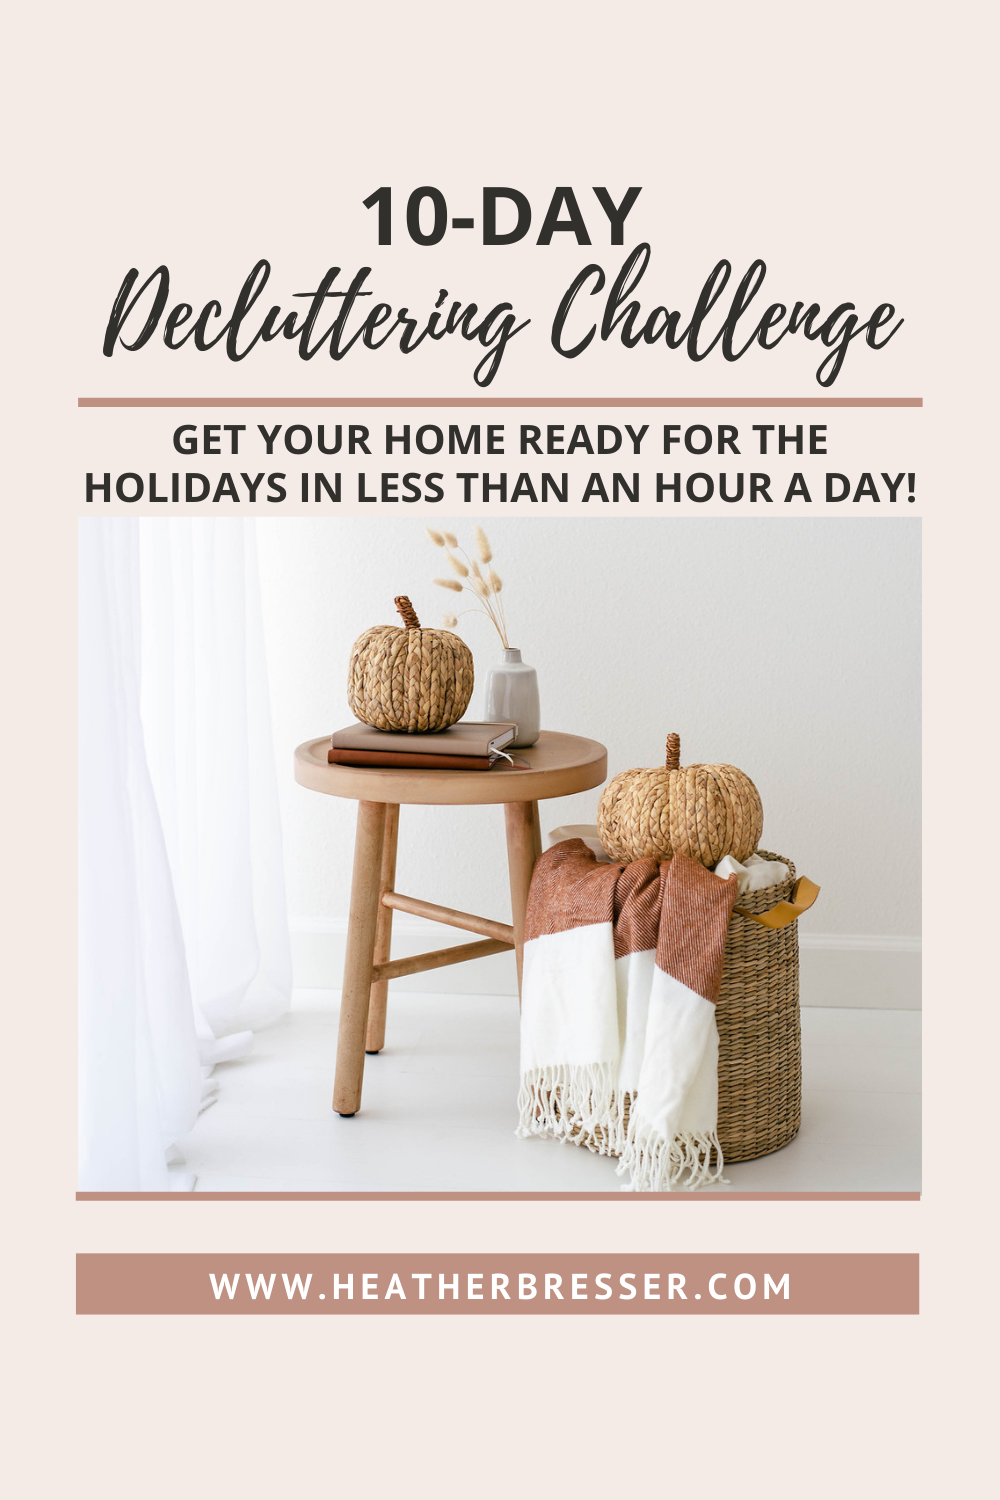 Click to join the 10-Day Declutter Challenge.